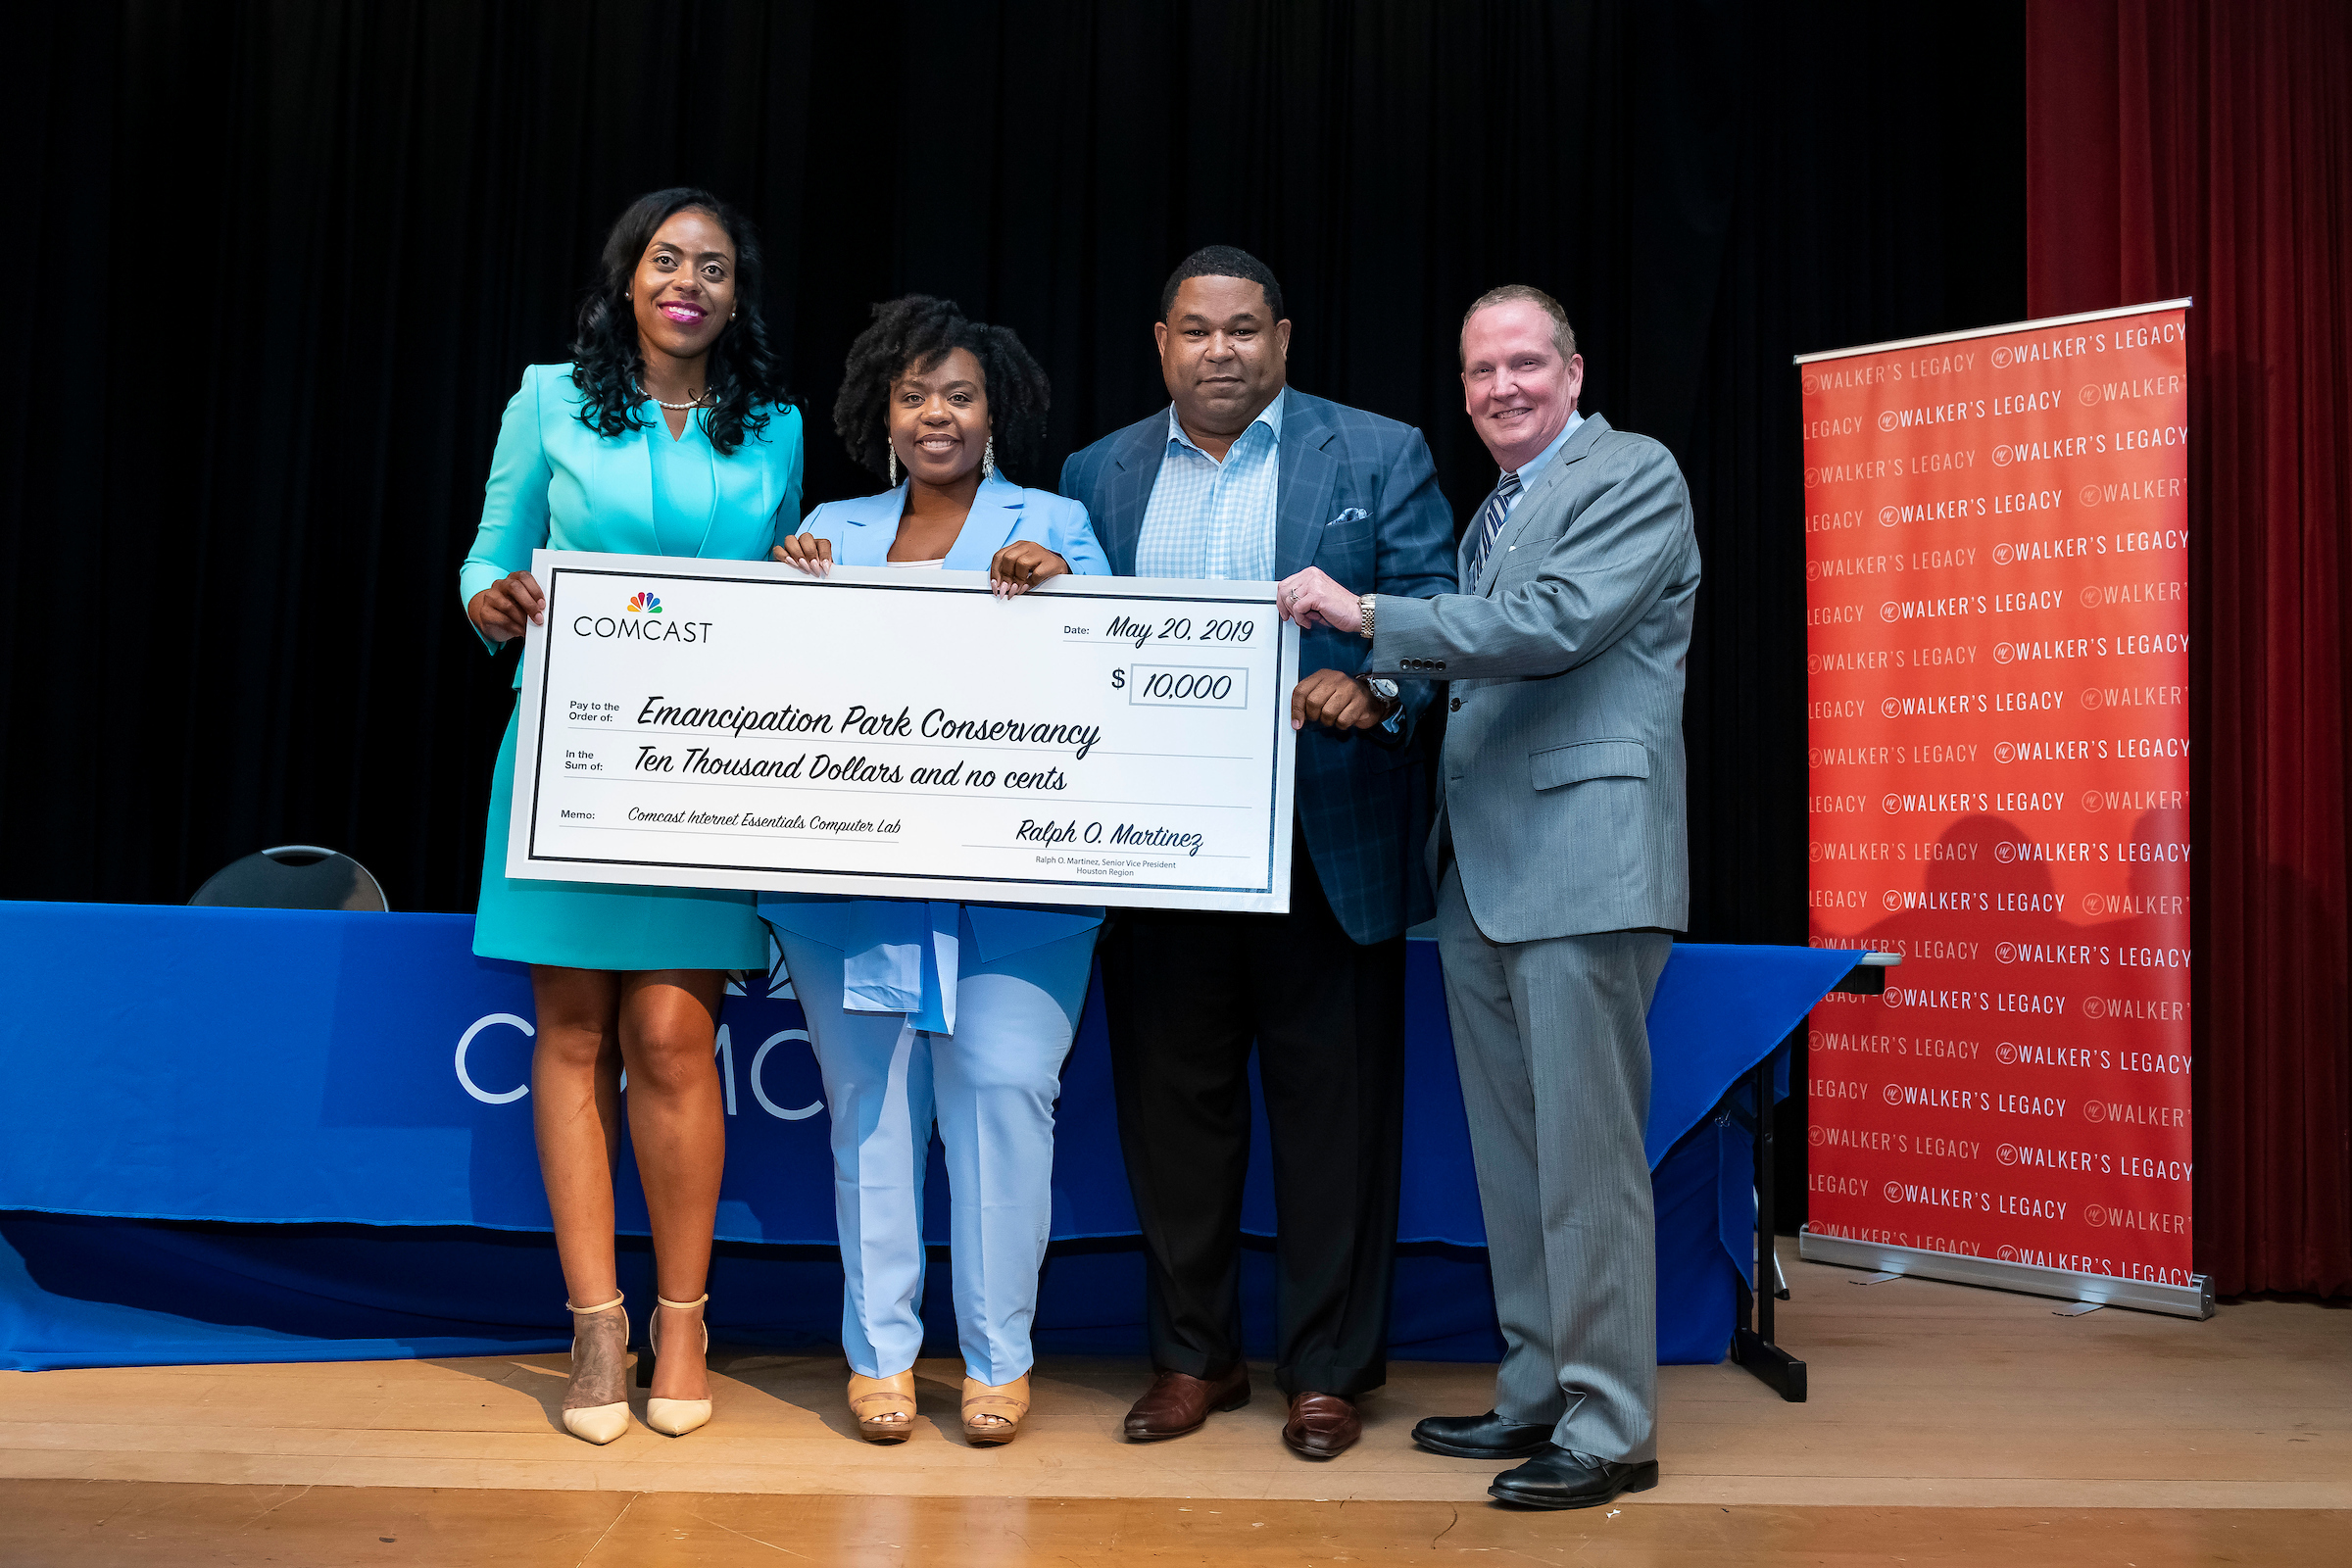 Comcast donates $10k to Emancipation Park Conservancy at Women in Tech Event